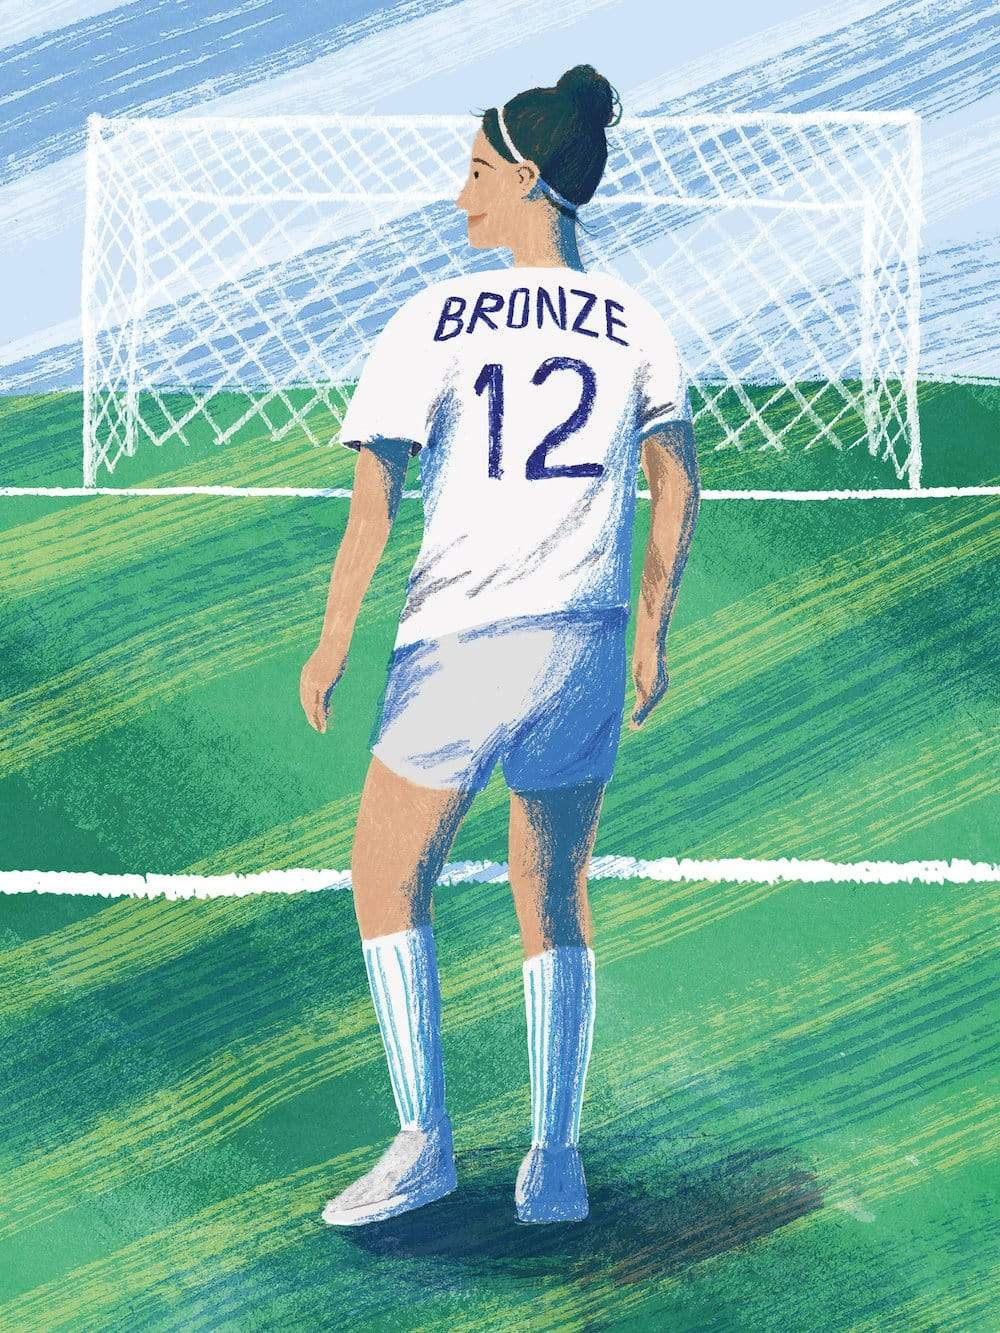 Your First Football Shirt Lucy Bronze England A3 print